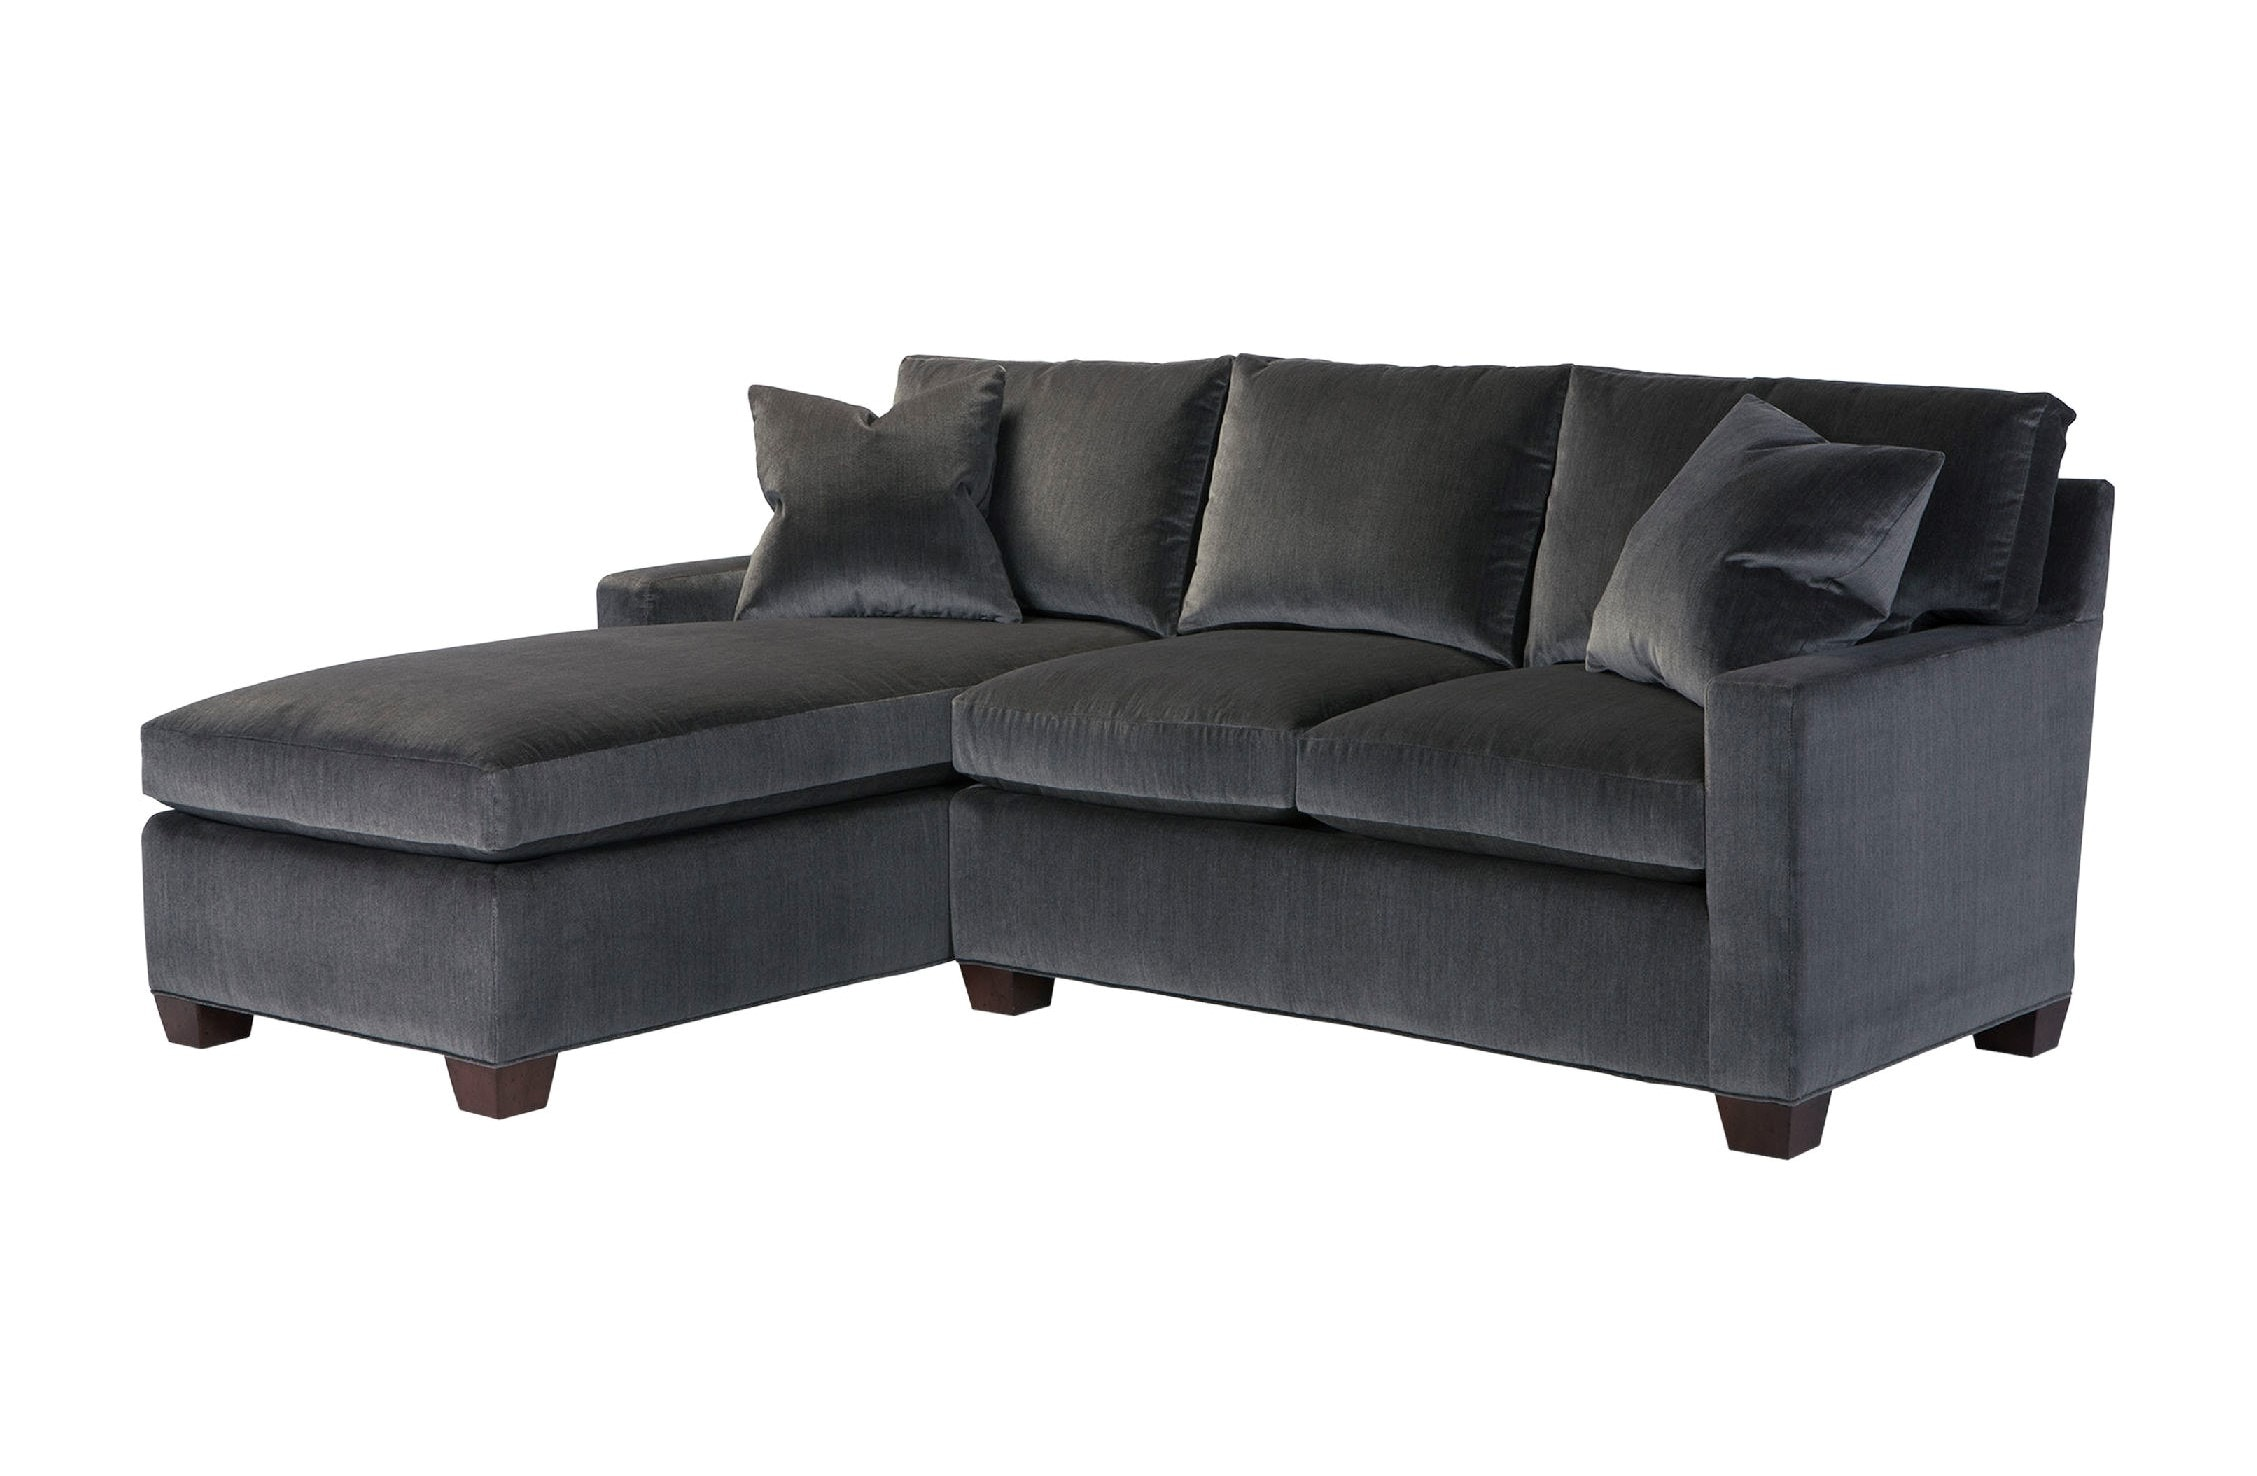 miramar leather sofa office online theodore alexander living room c364 57 ja bec c341 31 at mountain comfort furnishings